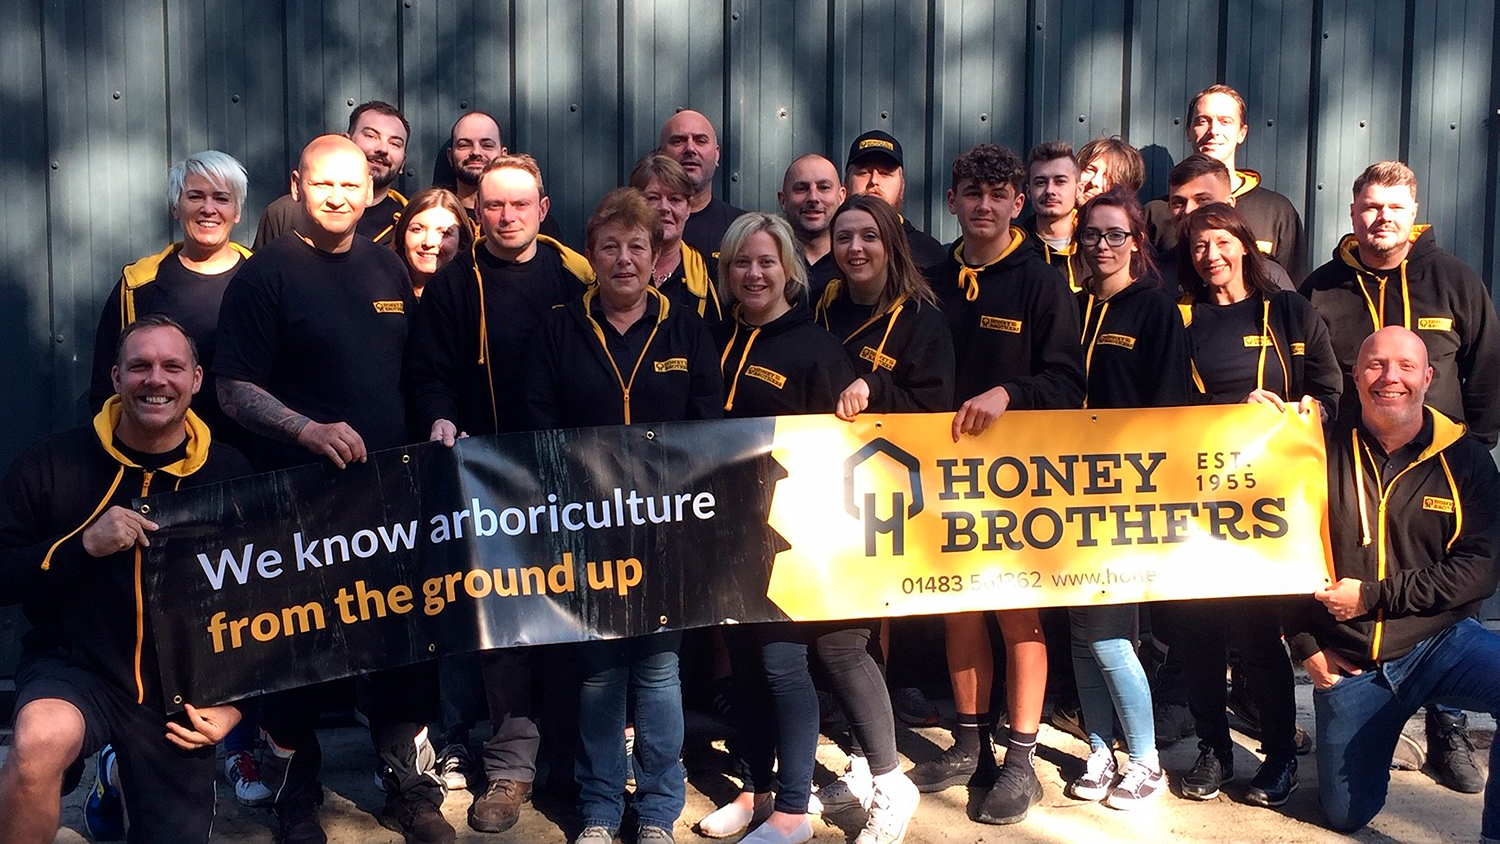 Honey Brothers staff proudly show off new branding